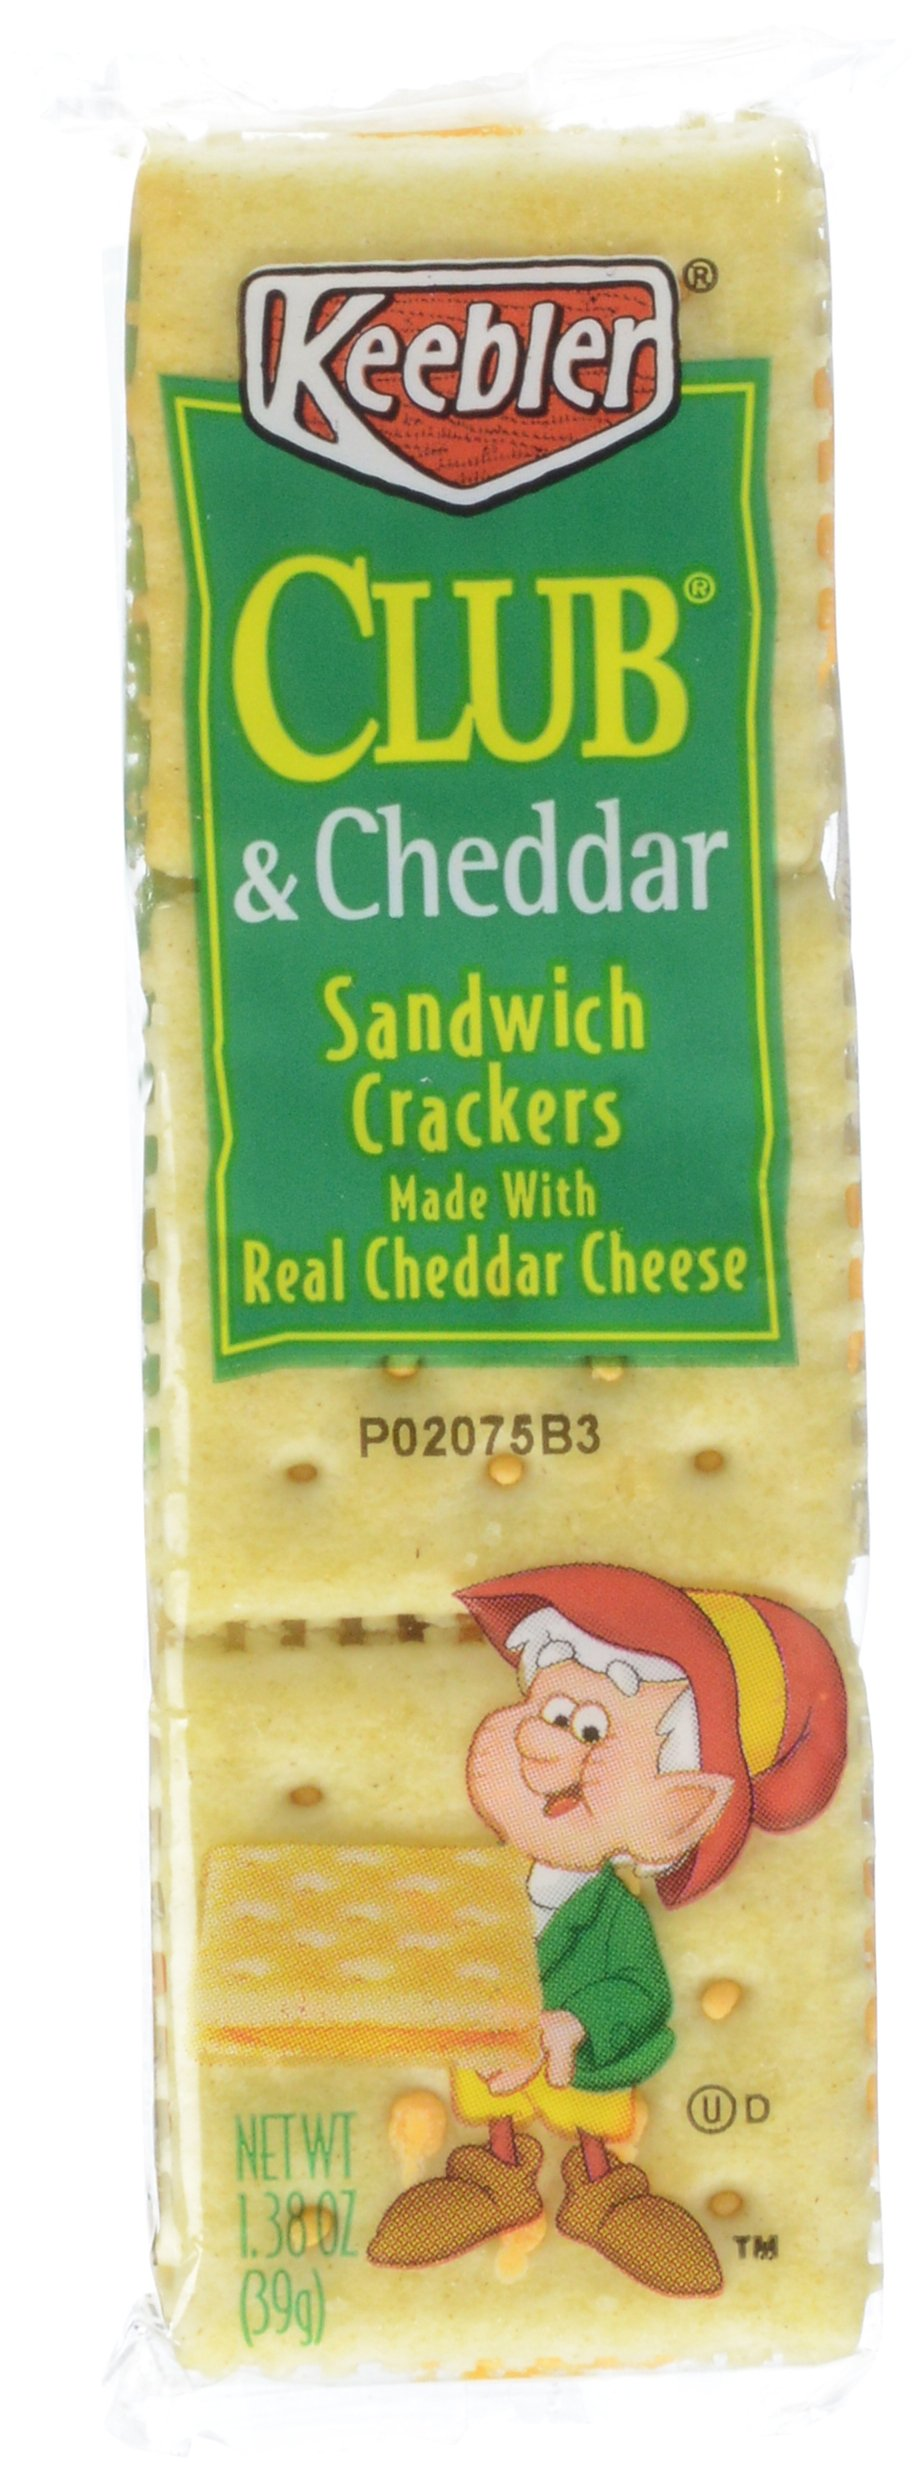 Keebler, Club & Cheddar Cracker Pack, 8 ct, 10.4 oz